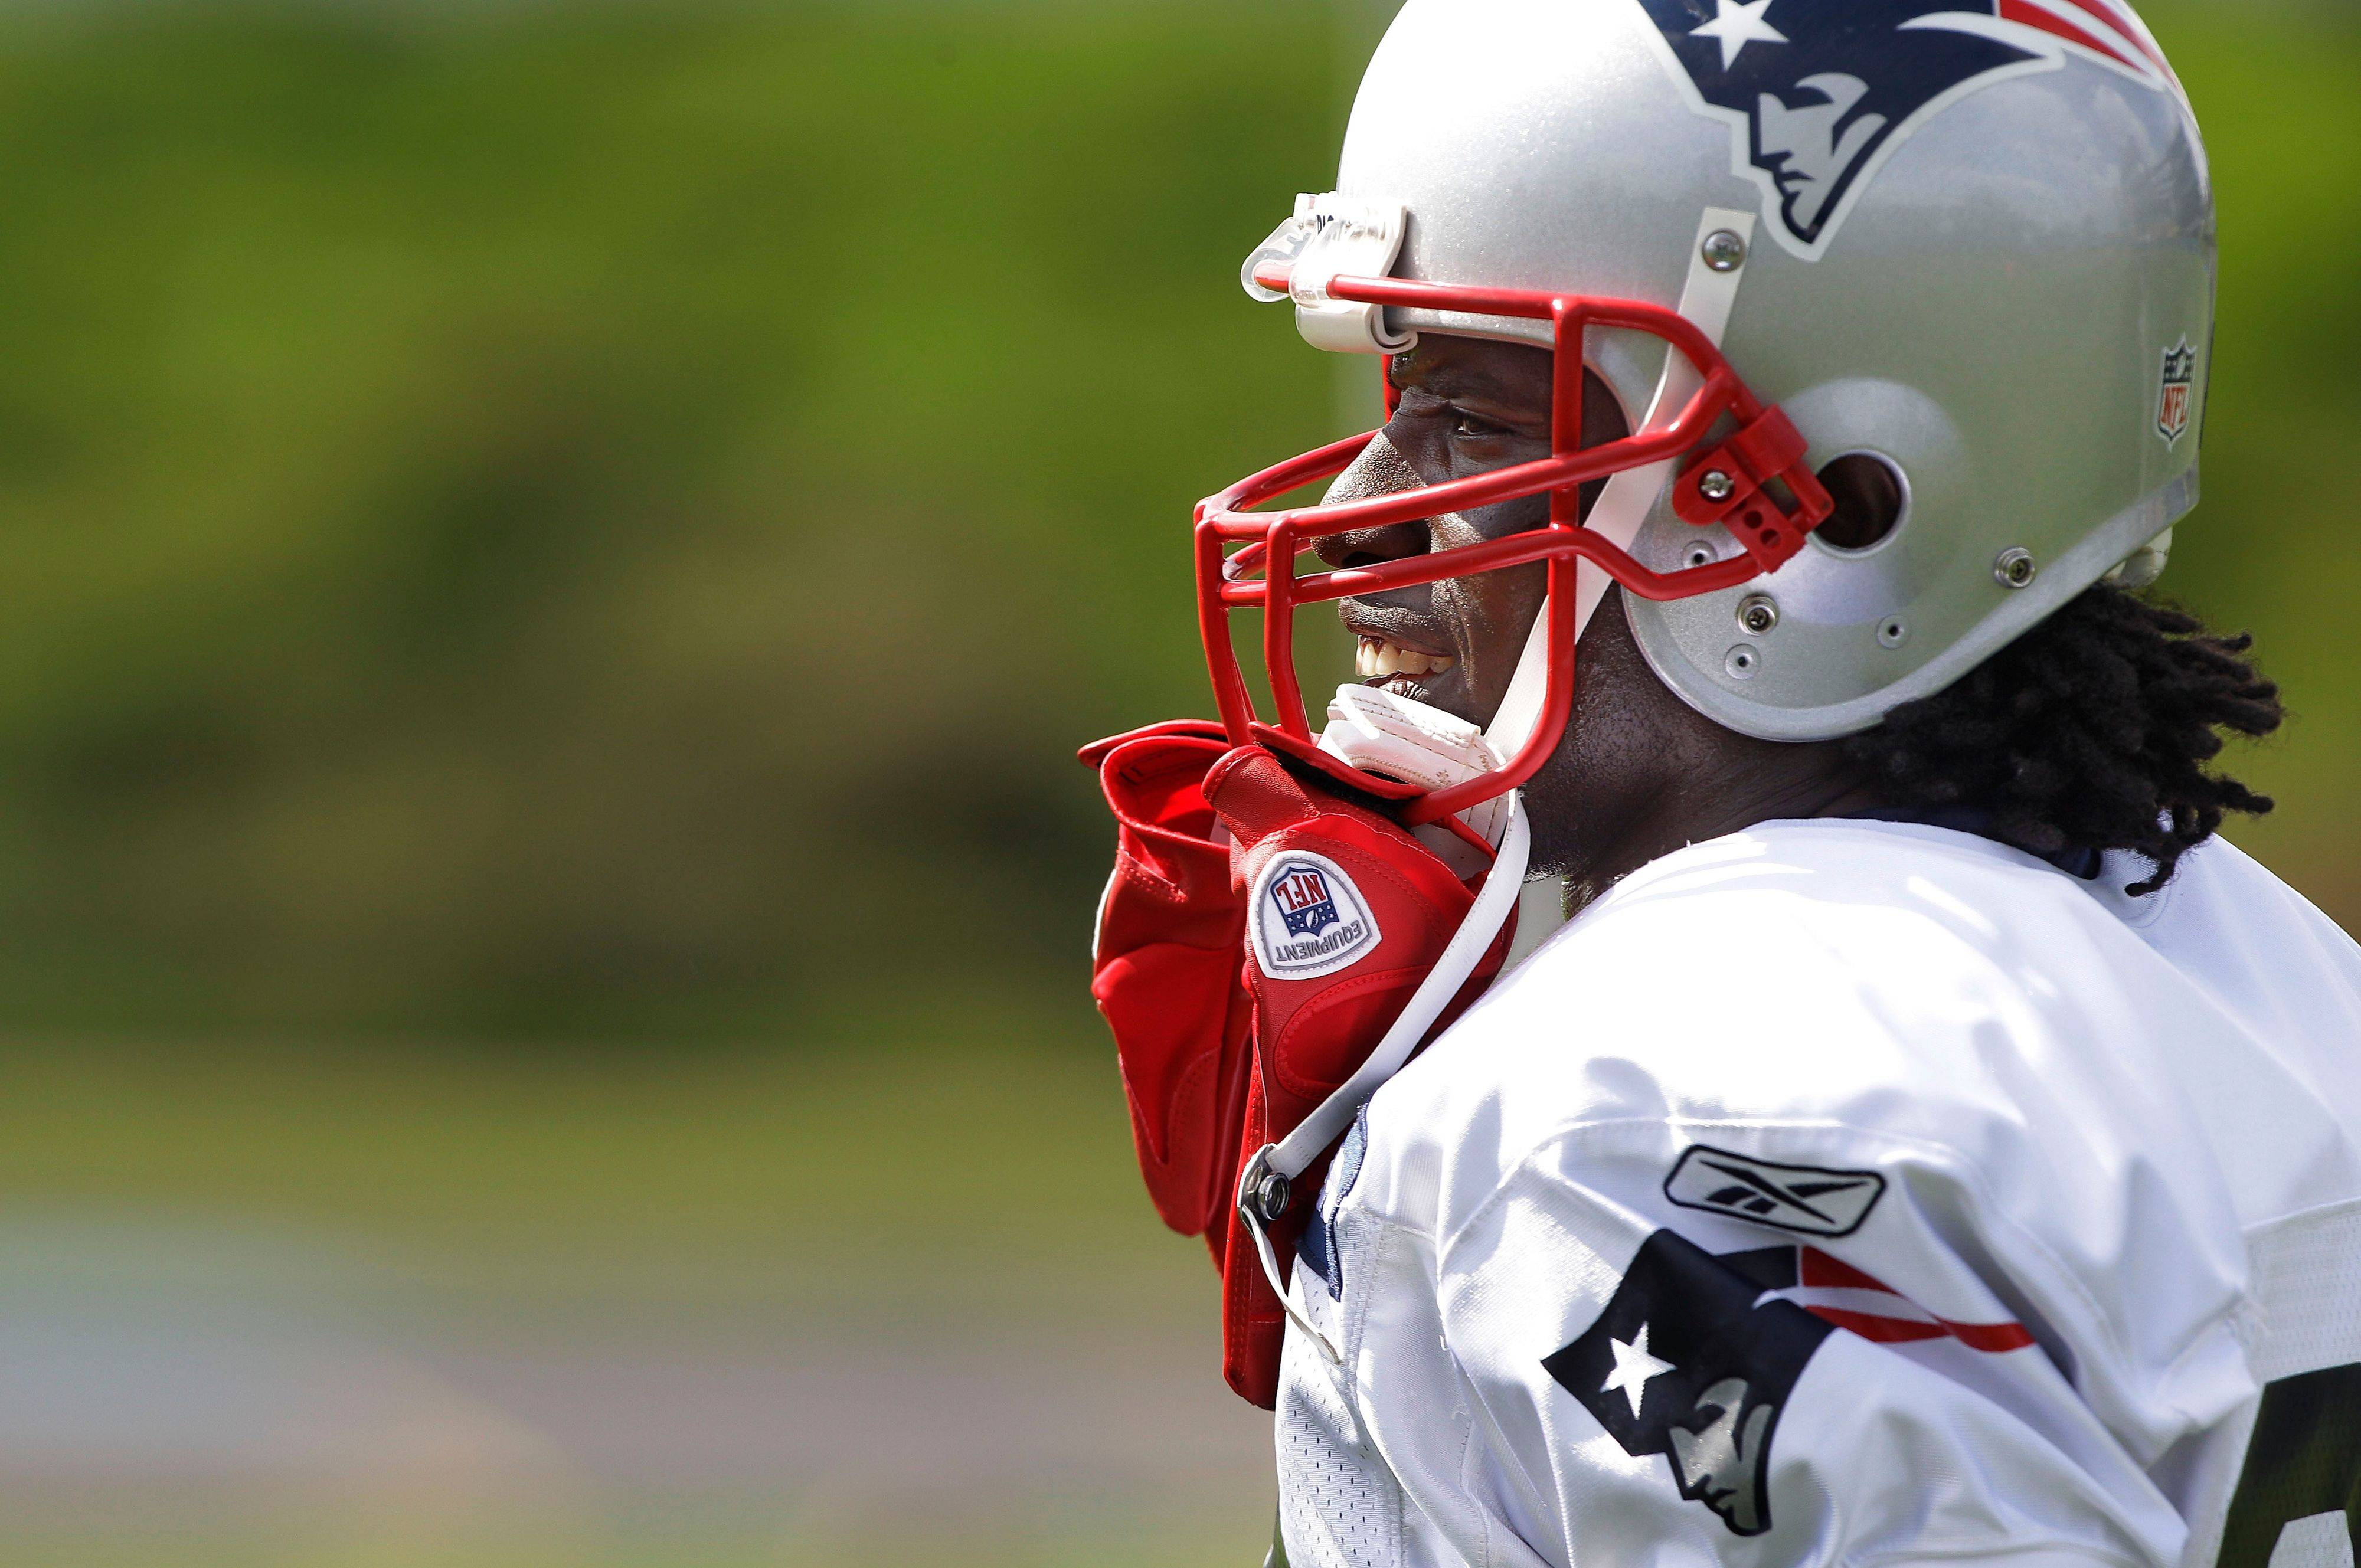 With quarterback Tom Brady on a roll, New England Patriots wide receiver Deion Branch, above, and his fellow receivers are racking up a lot of points for fantasy football owners. John Dietz expects Branch to have another good game this weekend.